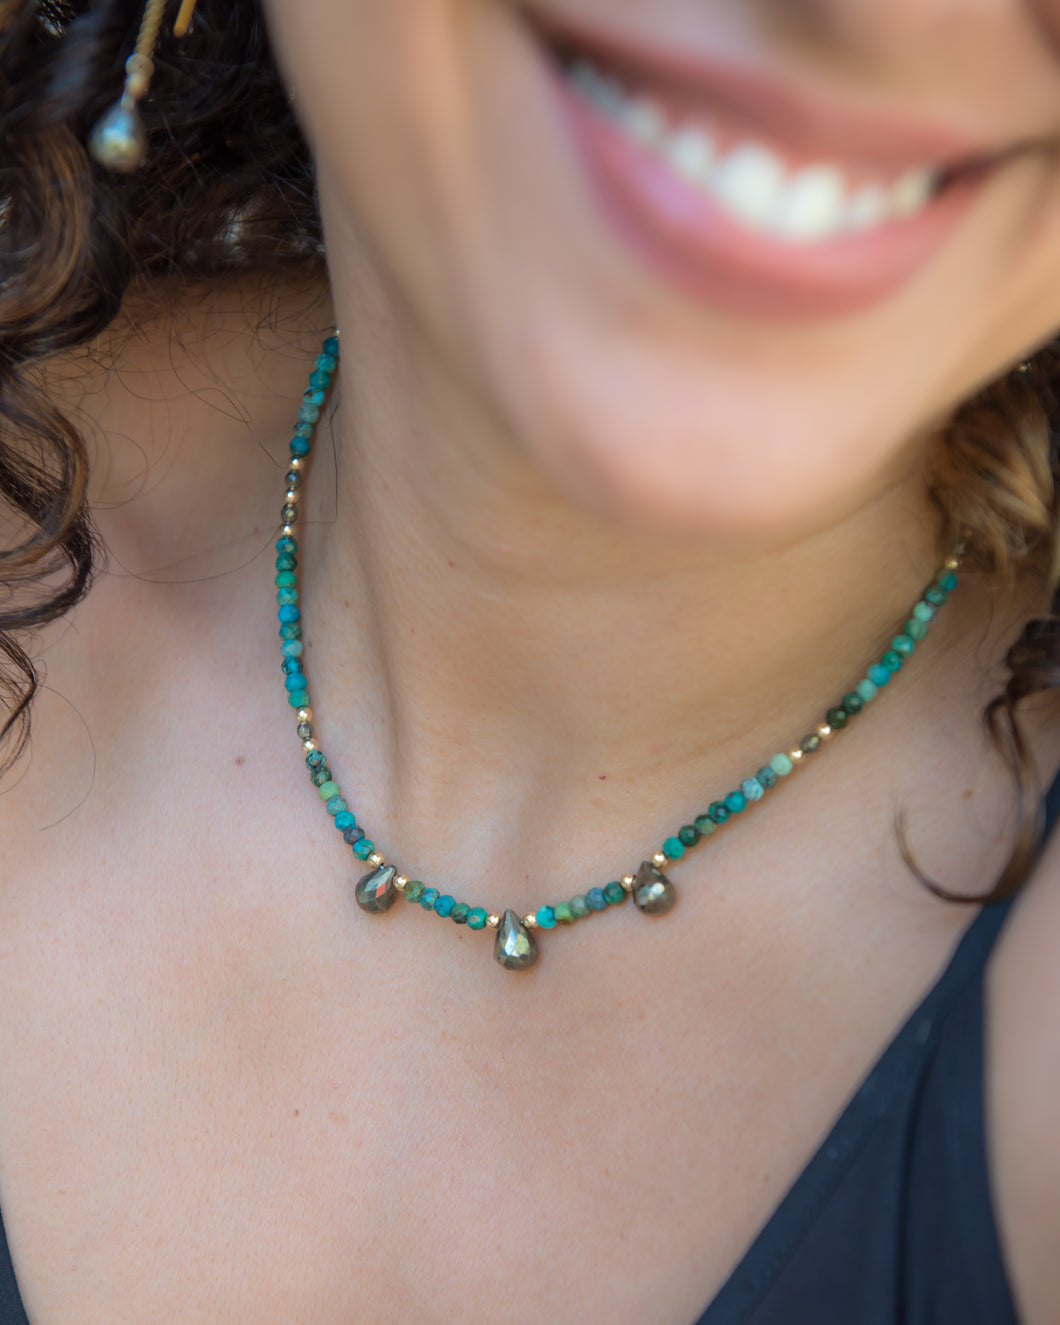 Chrysocolla Necklace with Pyrite Accents - Vida Jewelry Designs